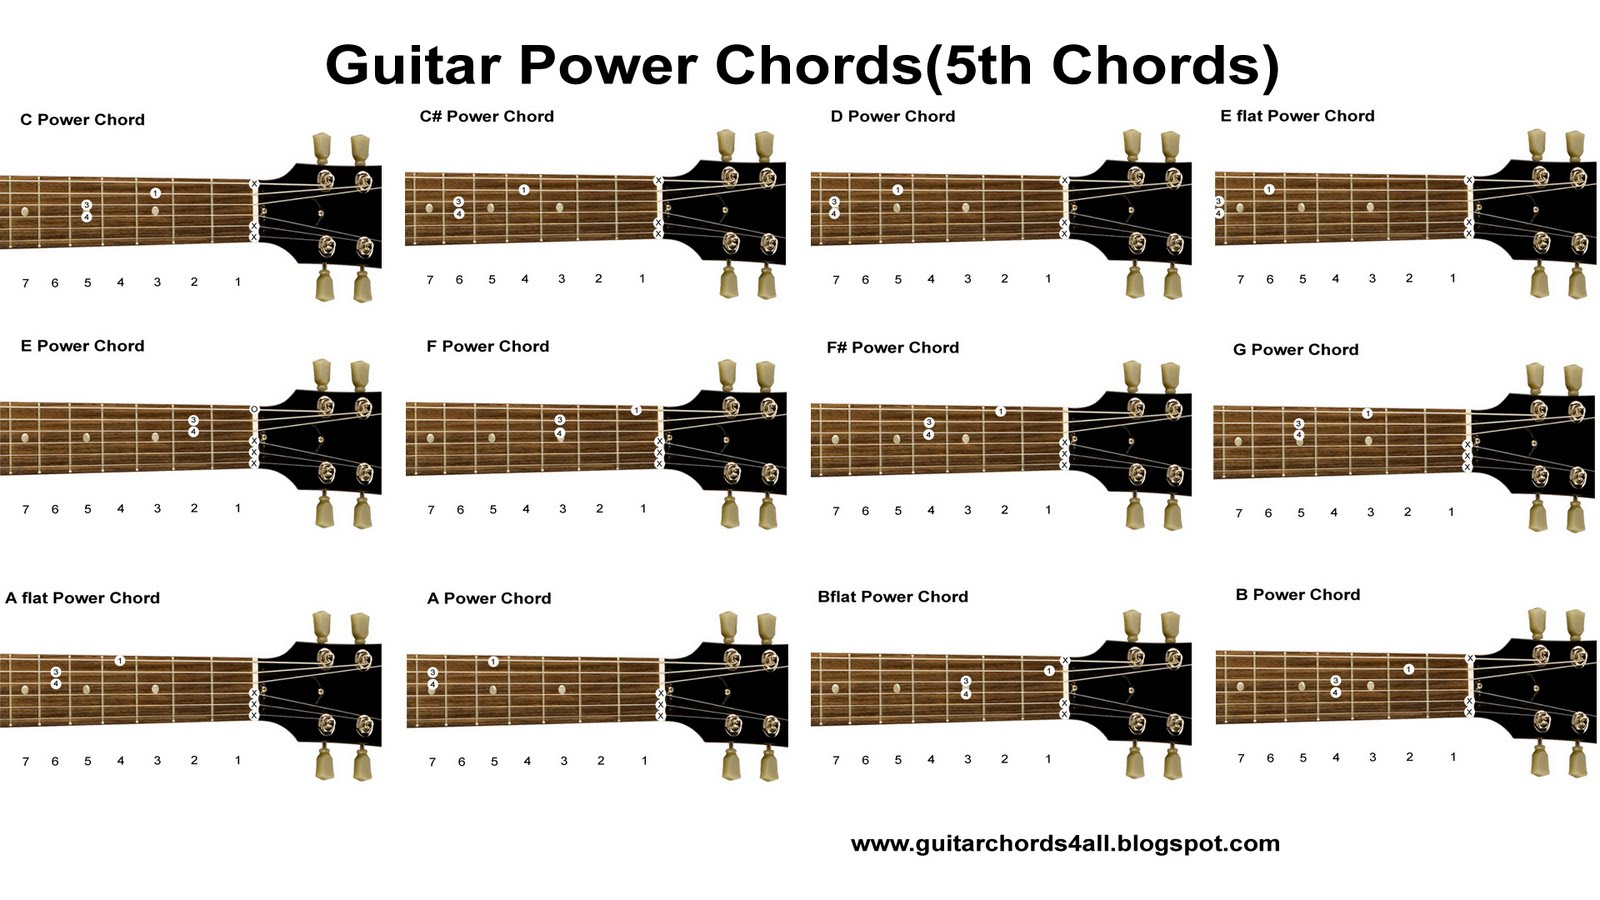 Chords In Electric Guitar : guitar chords guitar chords power chords ~ Hamham.info Haus und Dekorationen